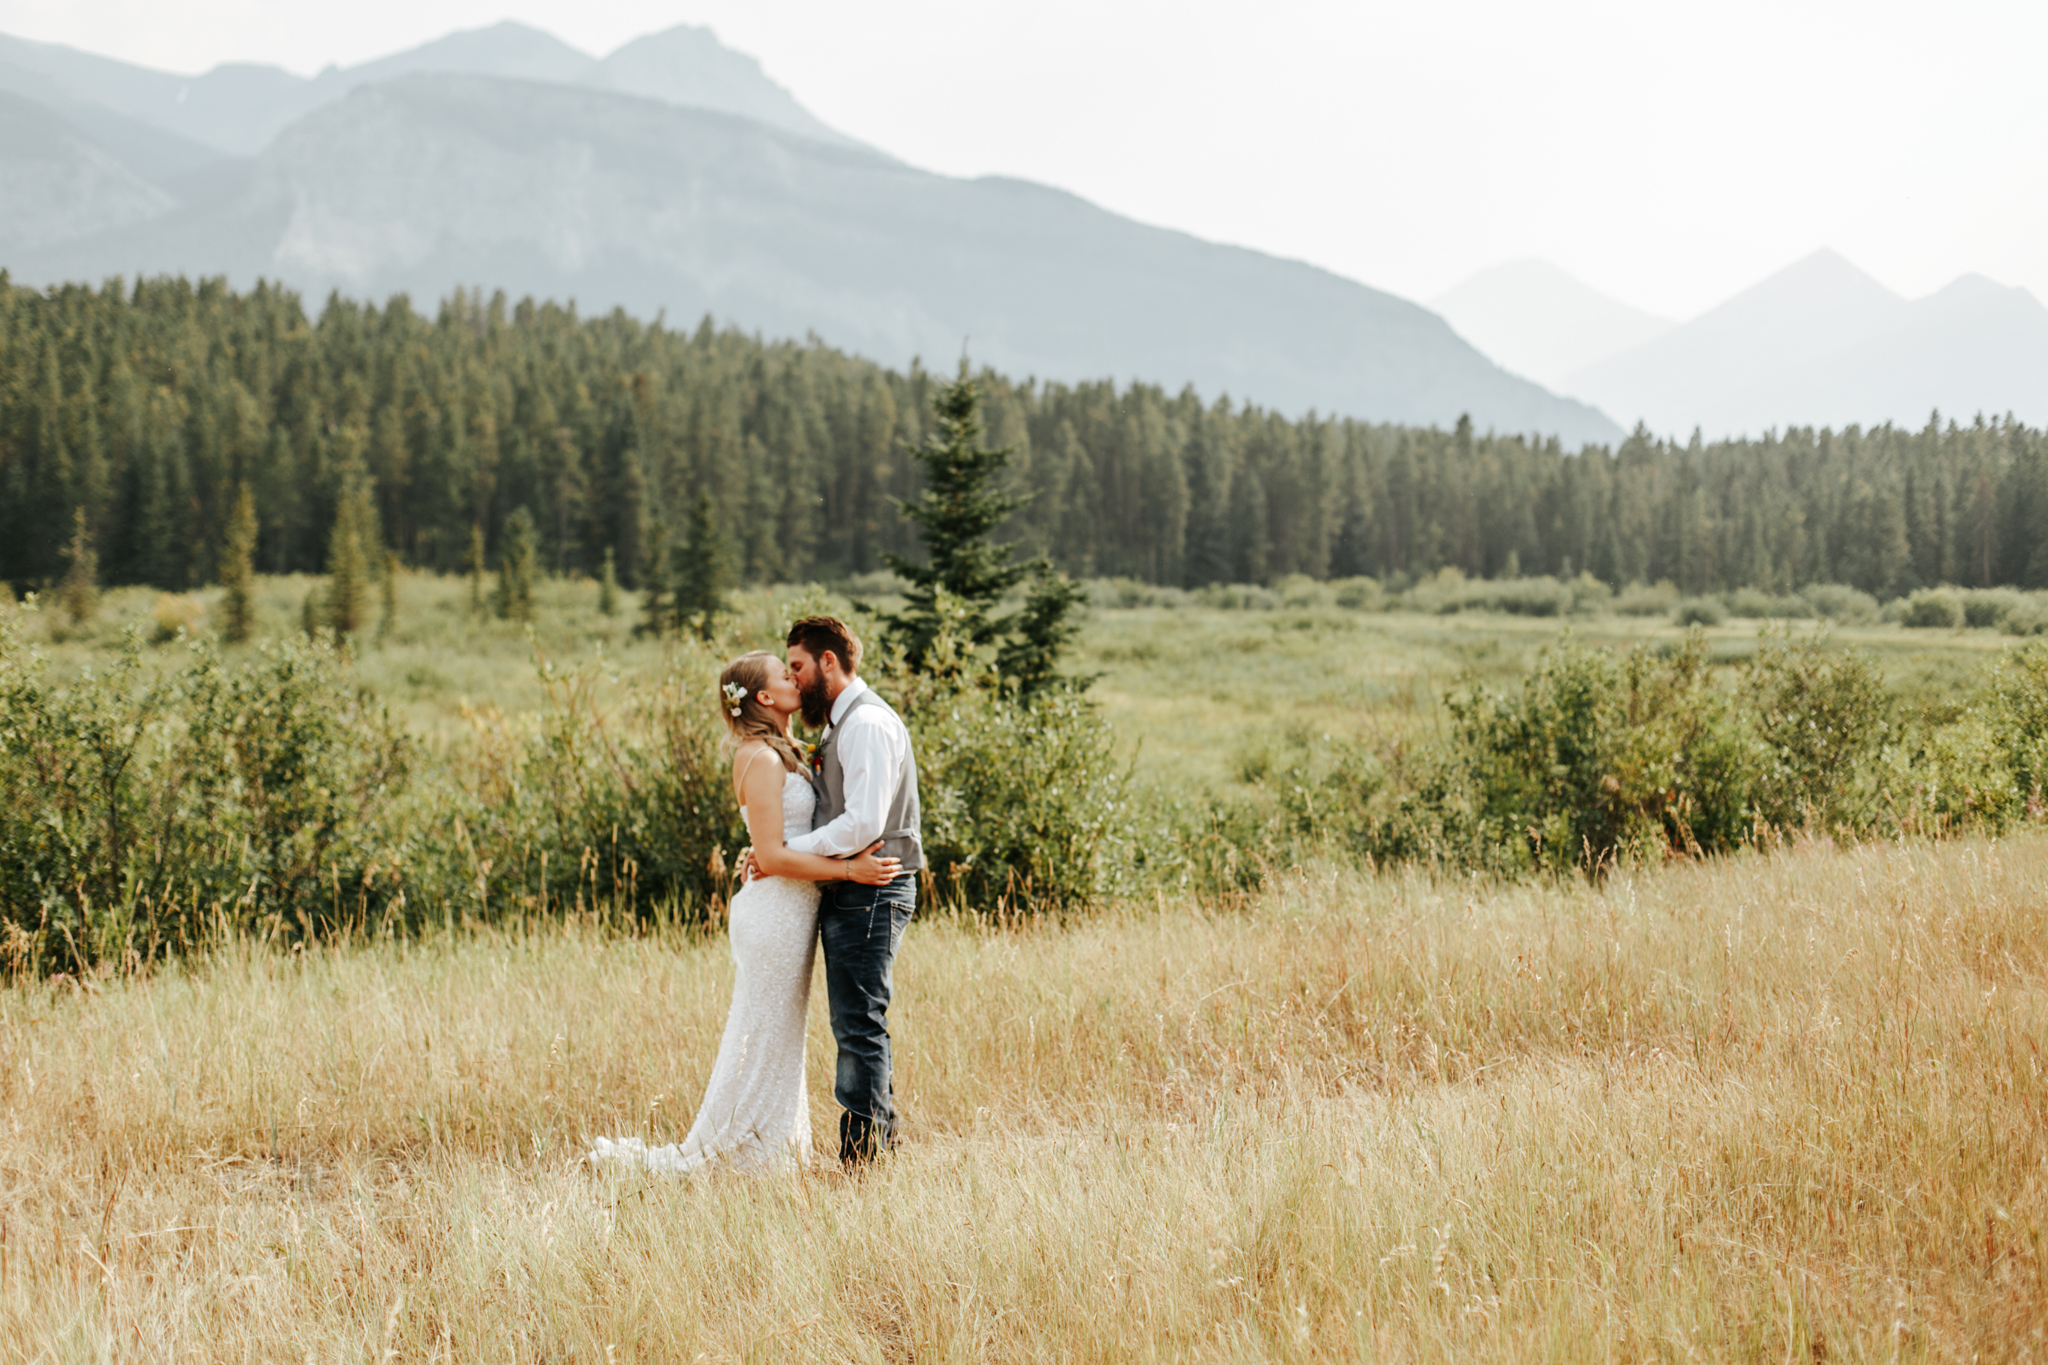 castle-mountain-wedding-photographer-love-and-be-loved-photography-lethbridge-pincher-creek-crowsnest-pass-yannick-rylee-photo-image-picture-155170.jpg